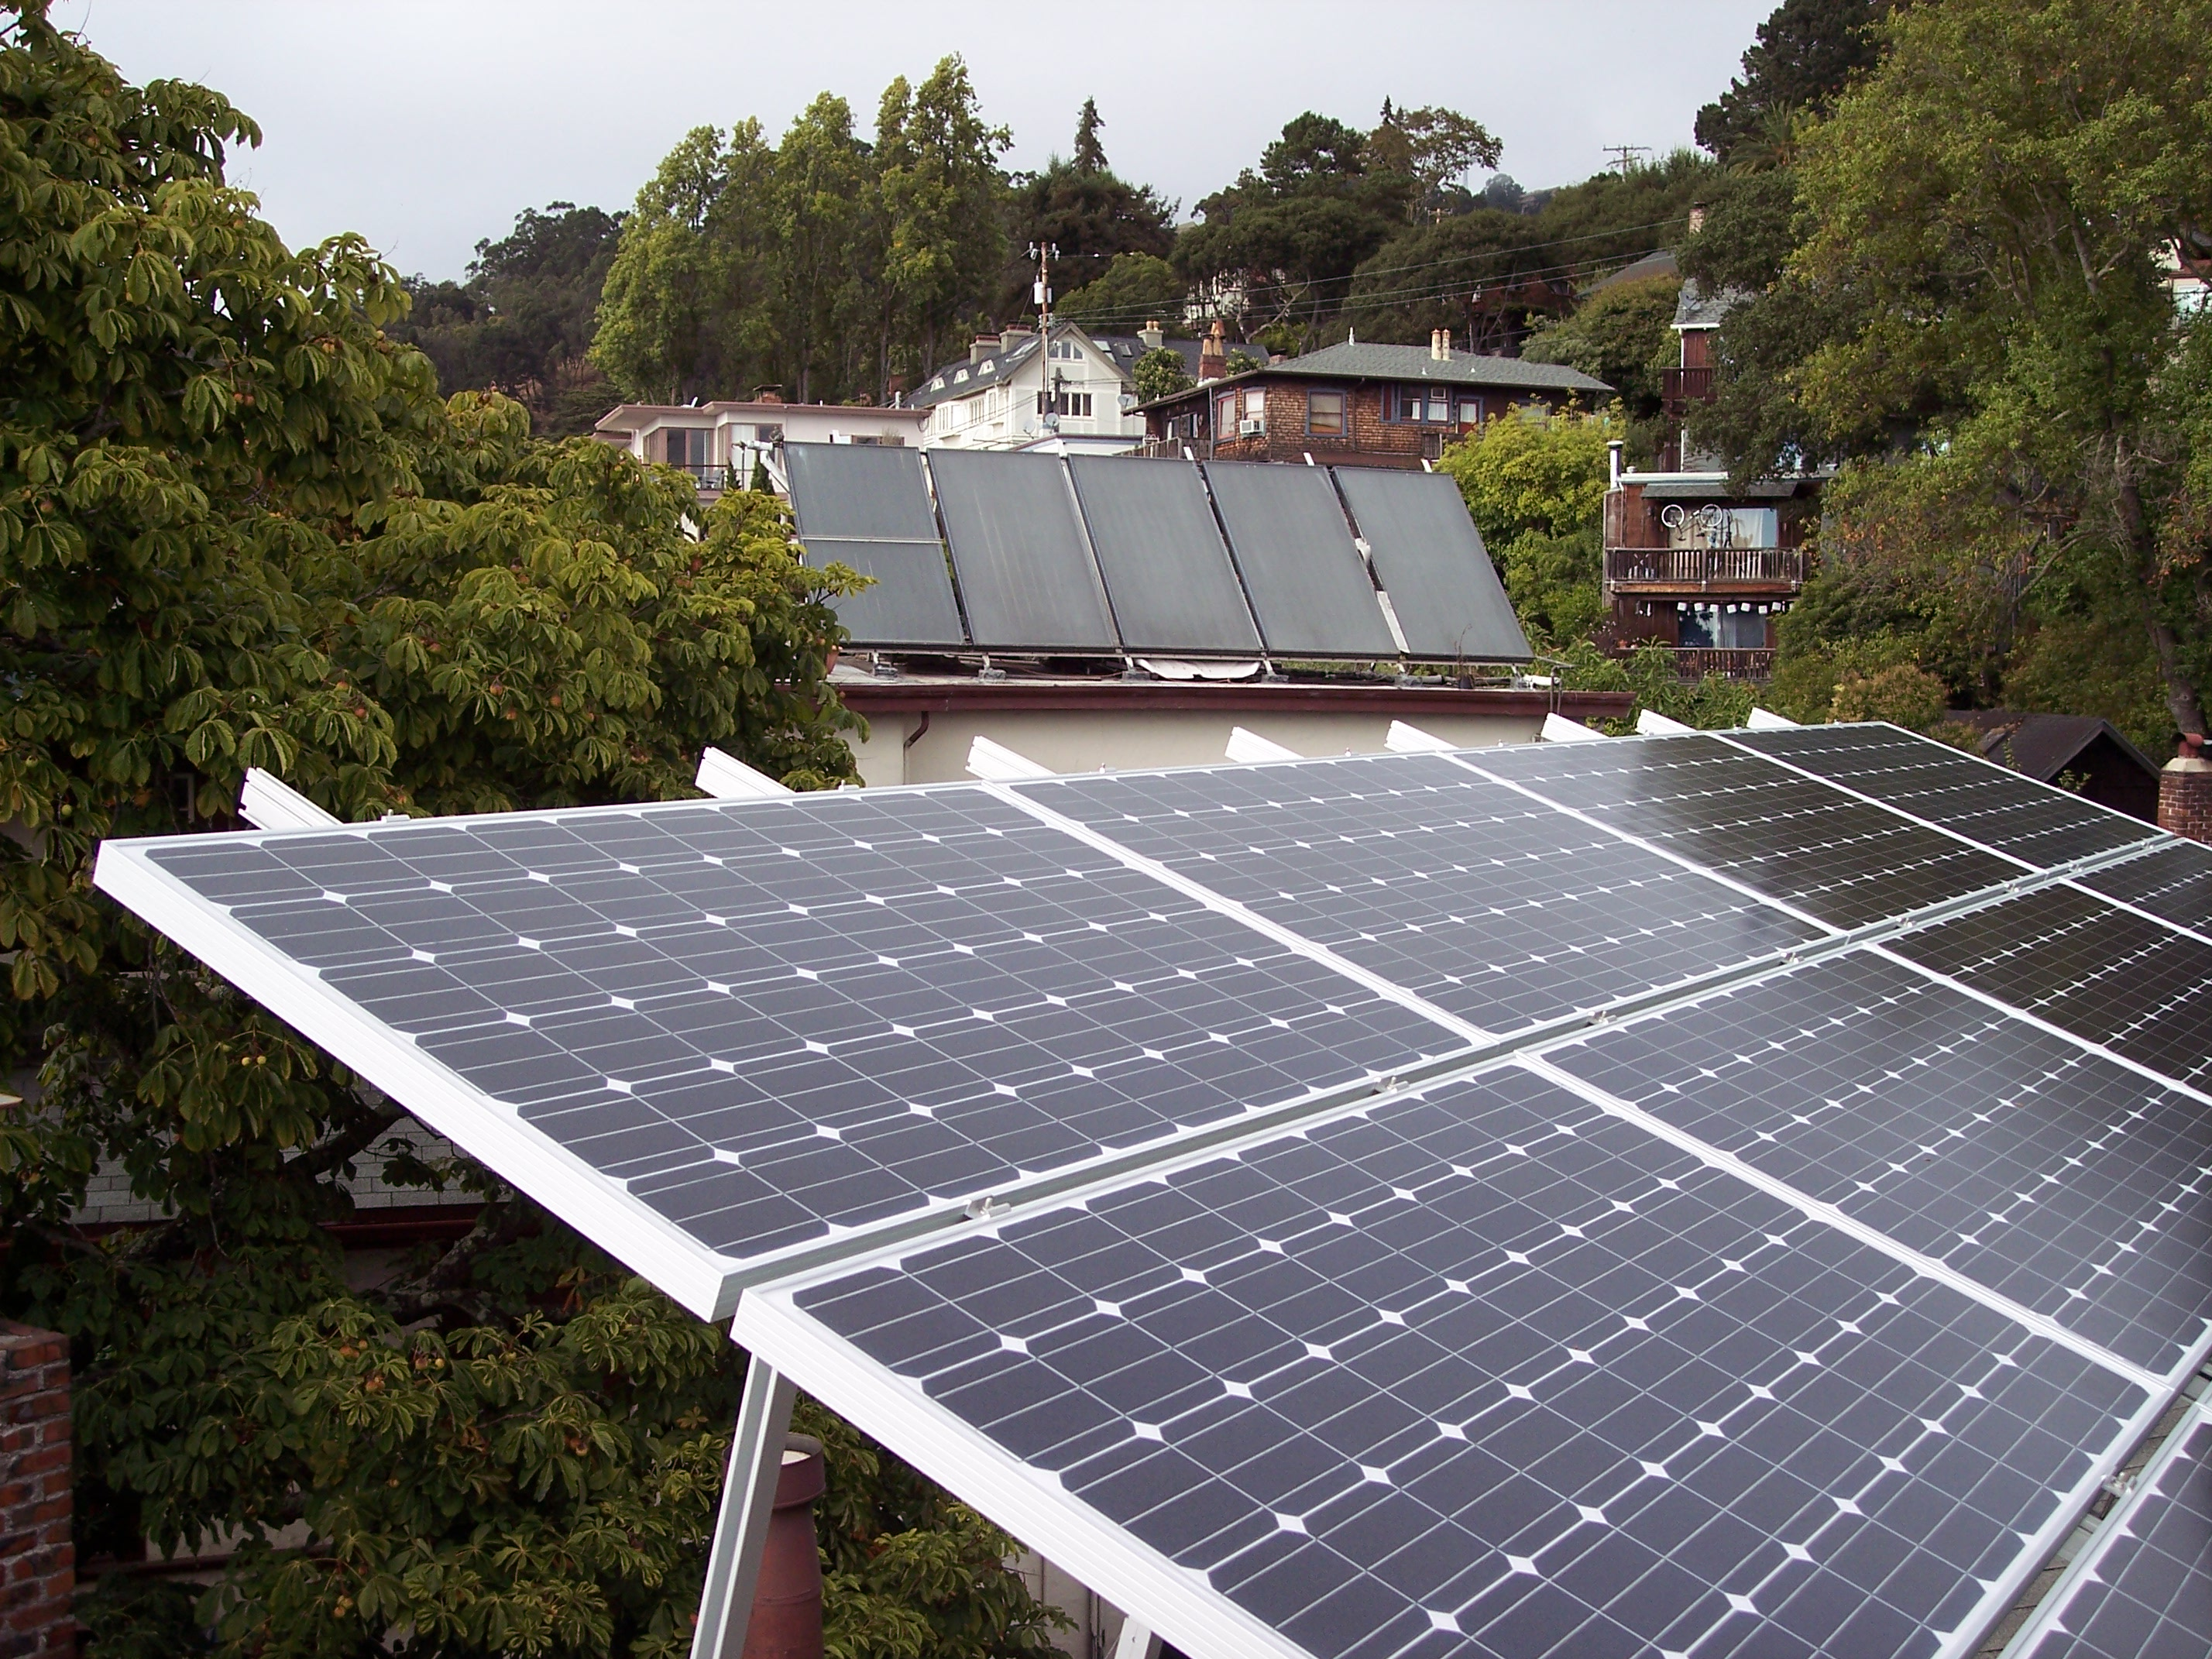 25% Import Safeguard Duty Imposed on Imported Solar Panels from China and Malaysia in India